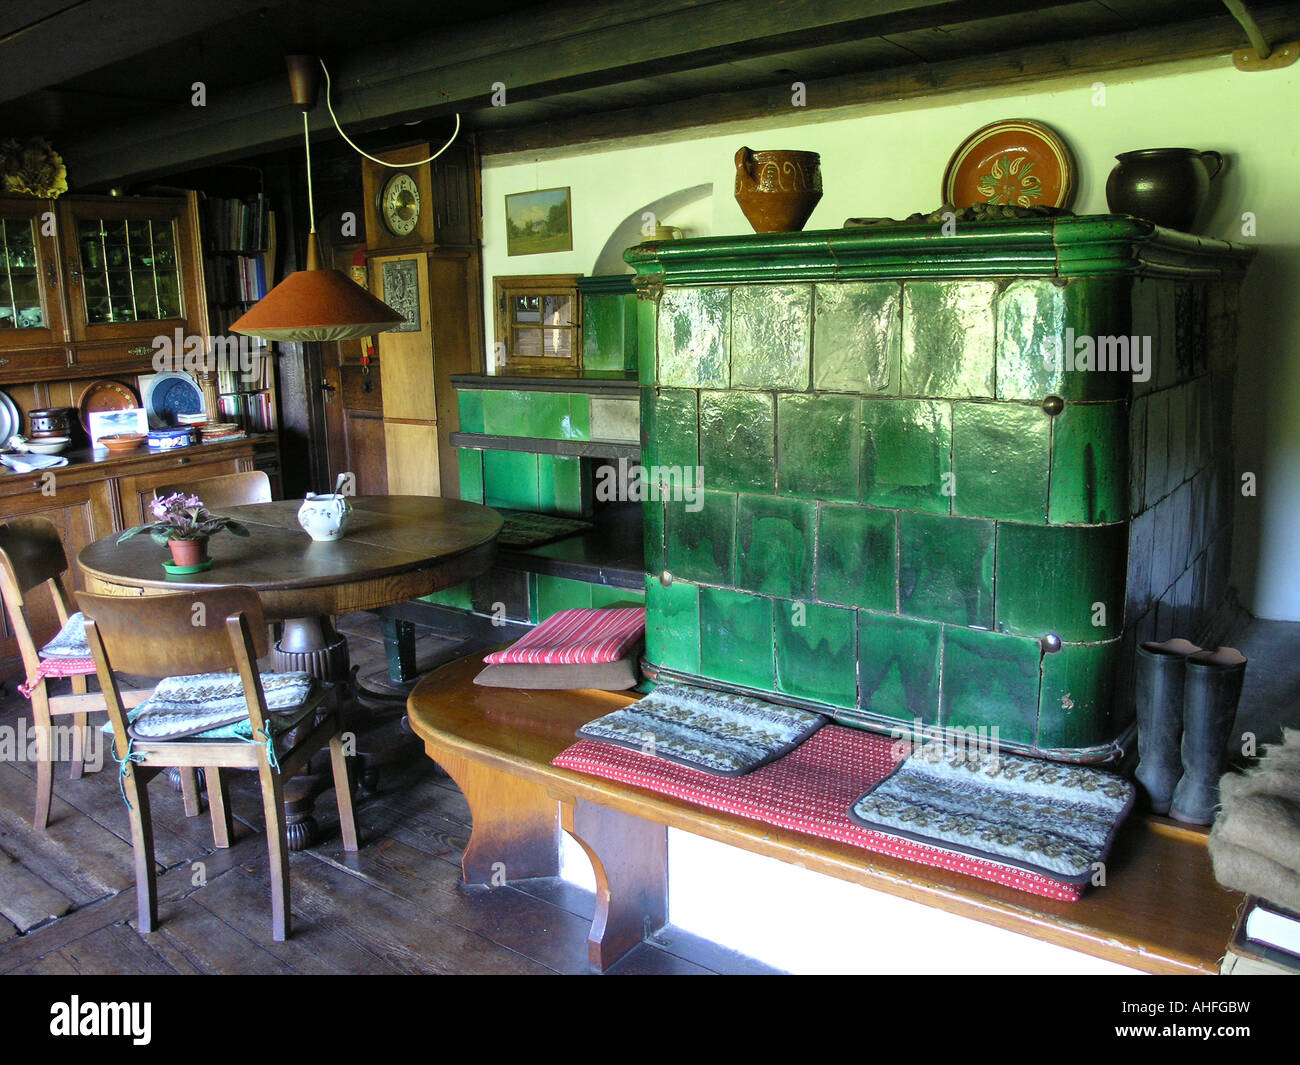 Tiled Stove Room Stock Photos & Tiled Stove Room Stock Images - Alamy